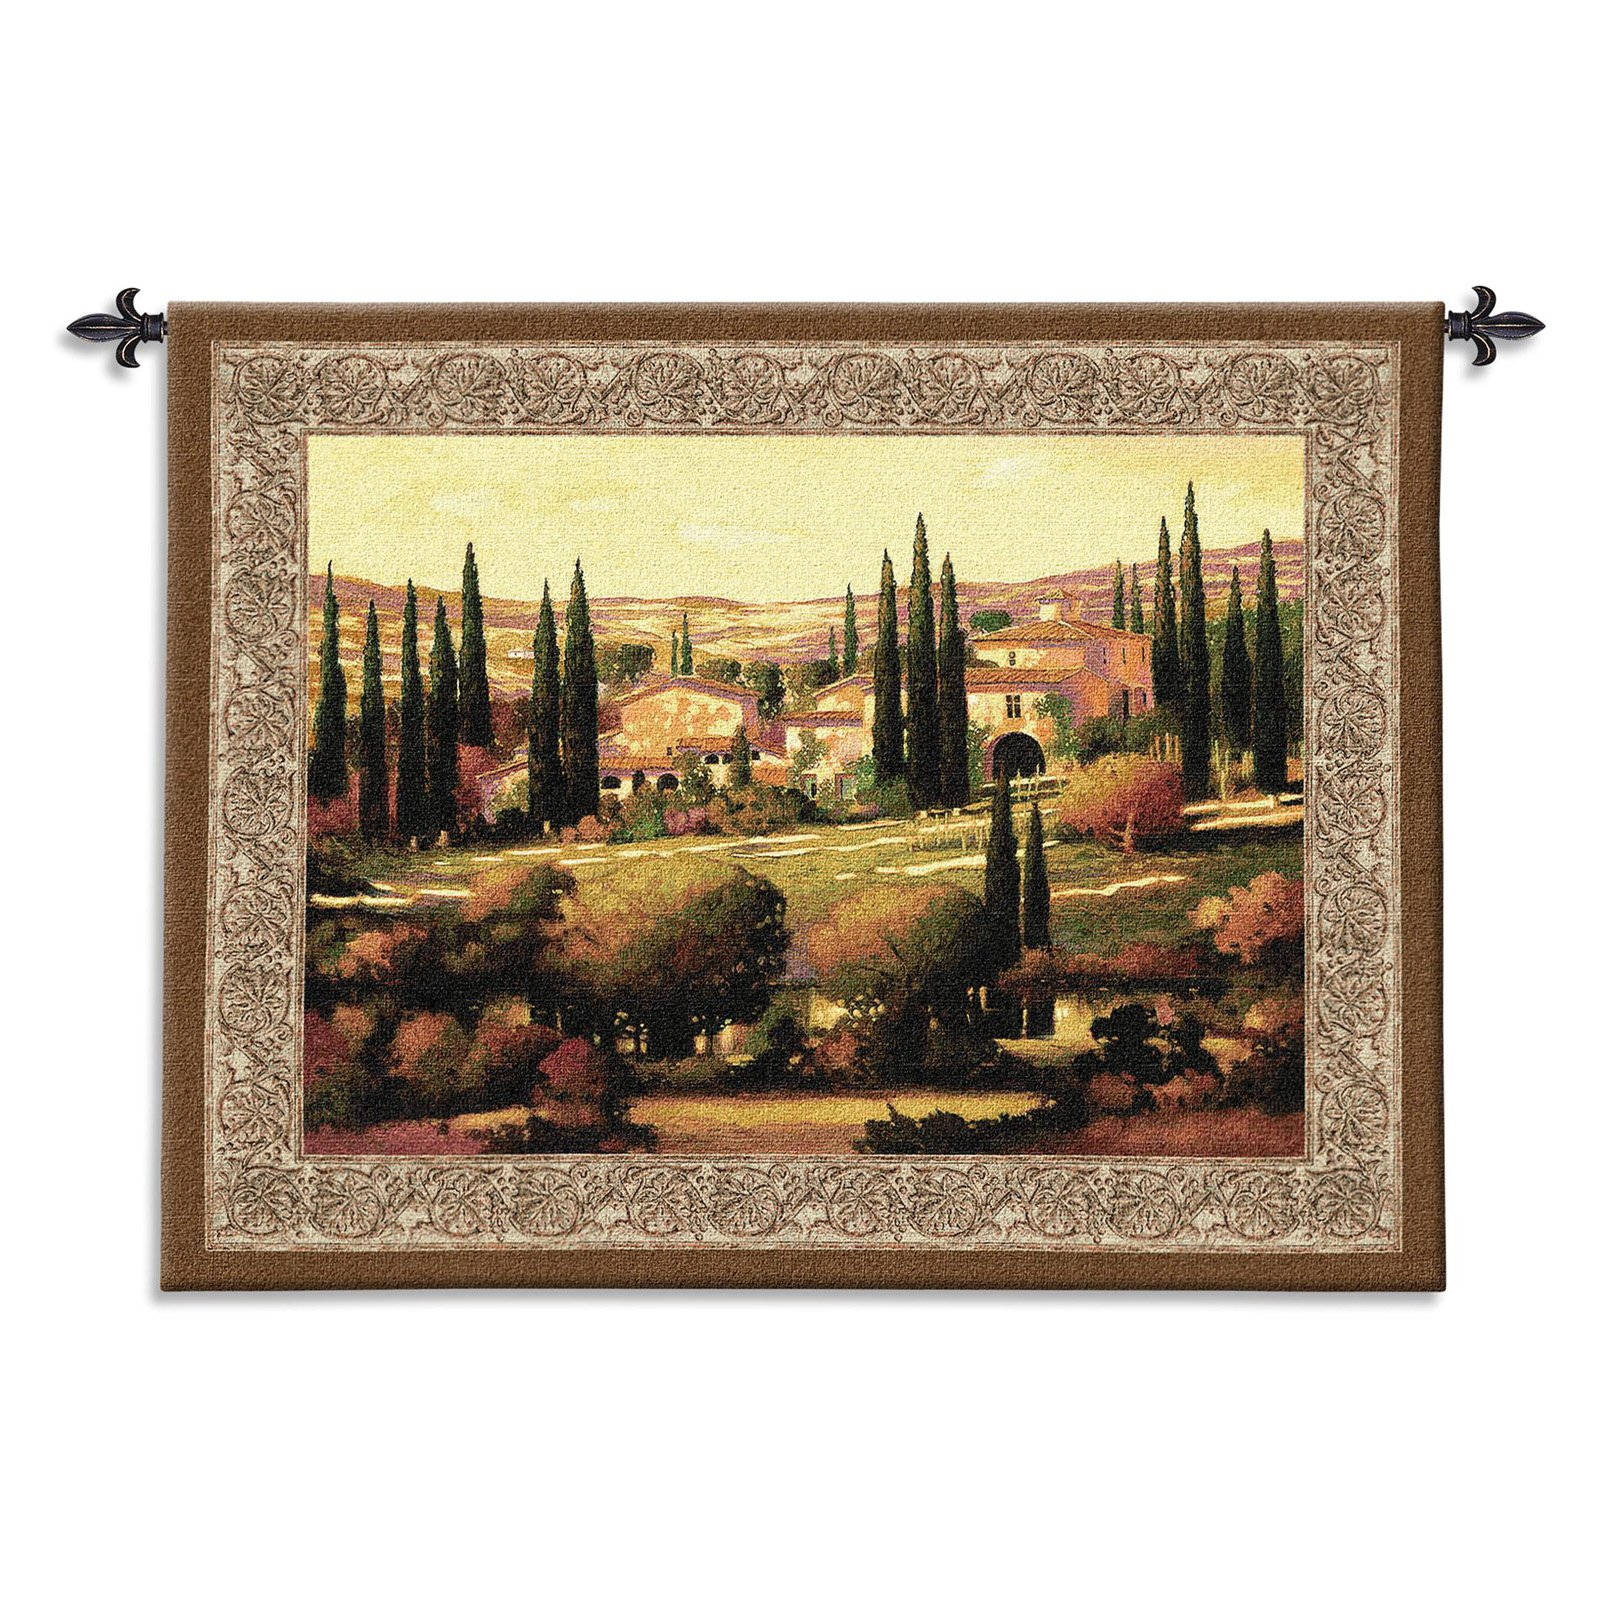 FineArtTapestries 2708-WH Tuscan Gold Wall Tapestry by Supplier Generic